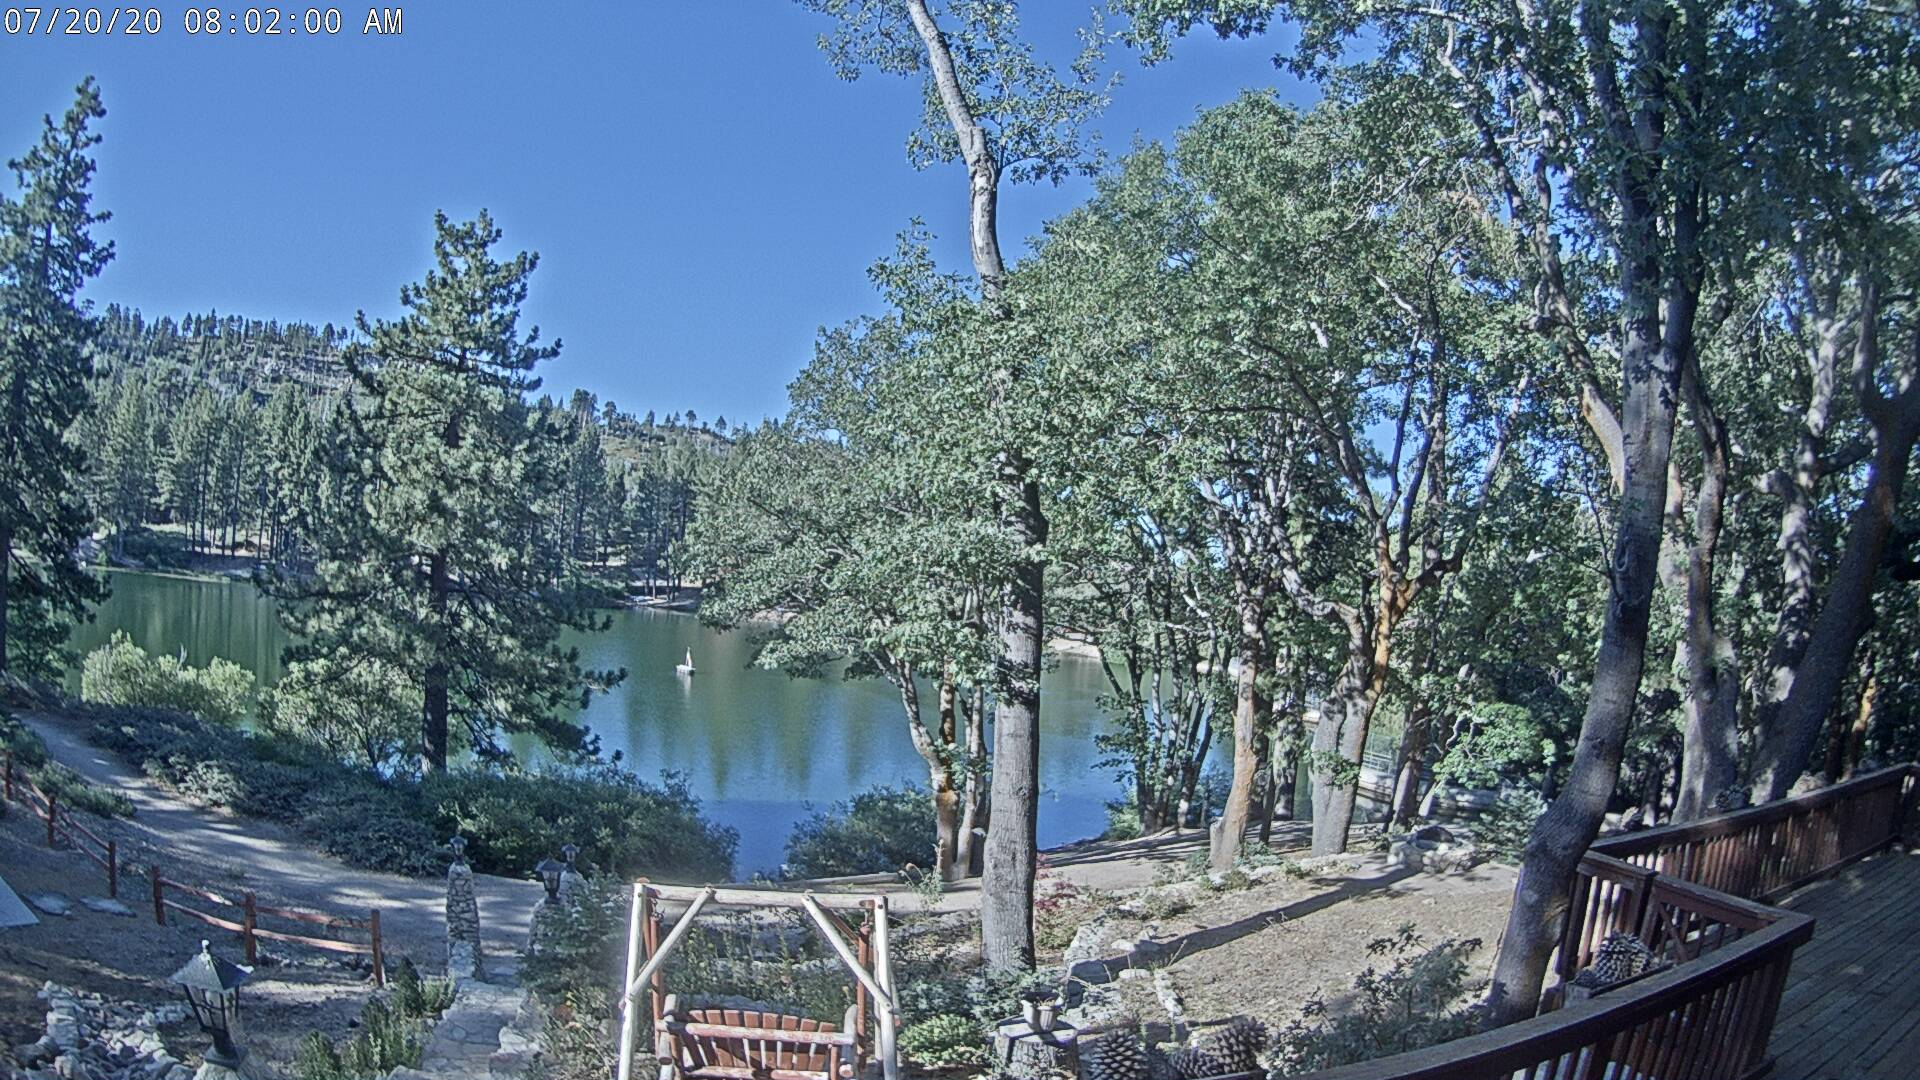 Green Valley Lake Webcam Lake View